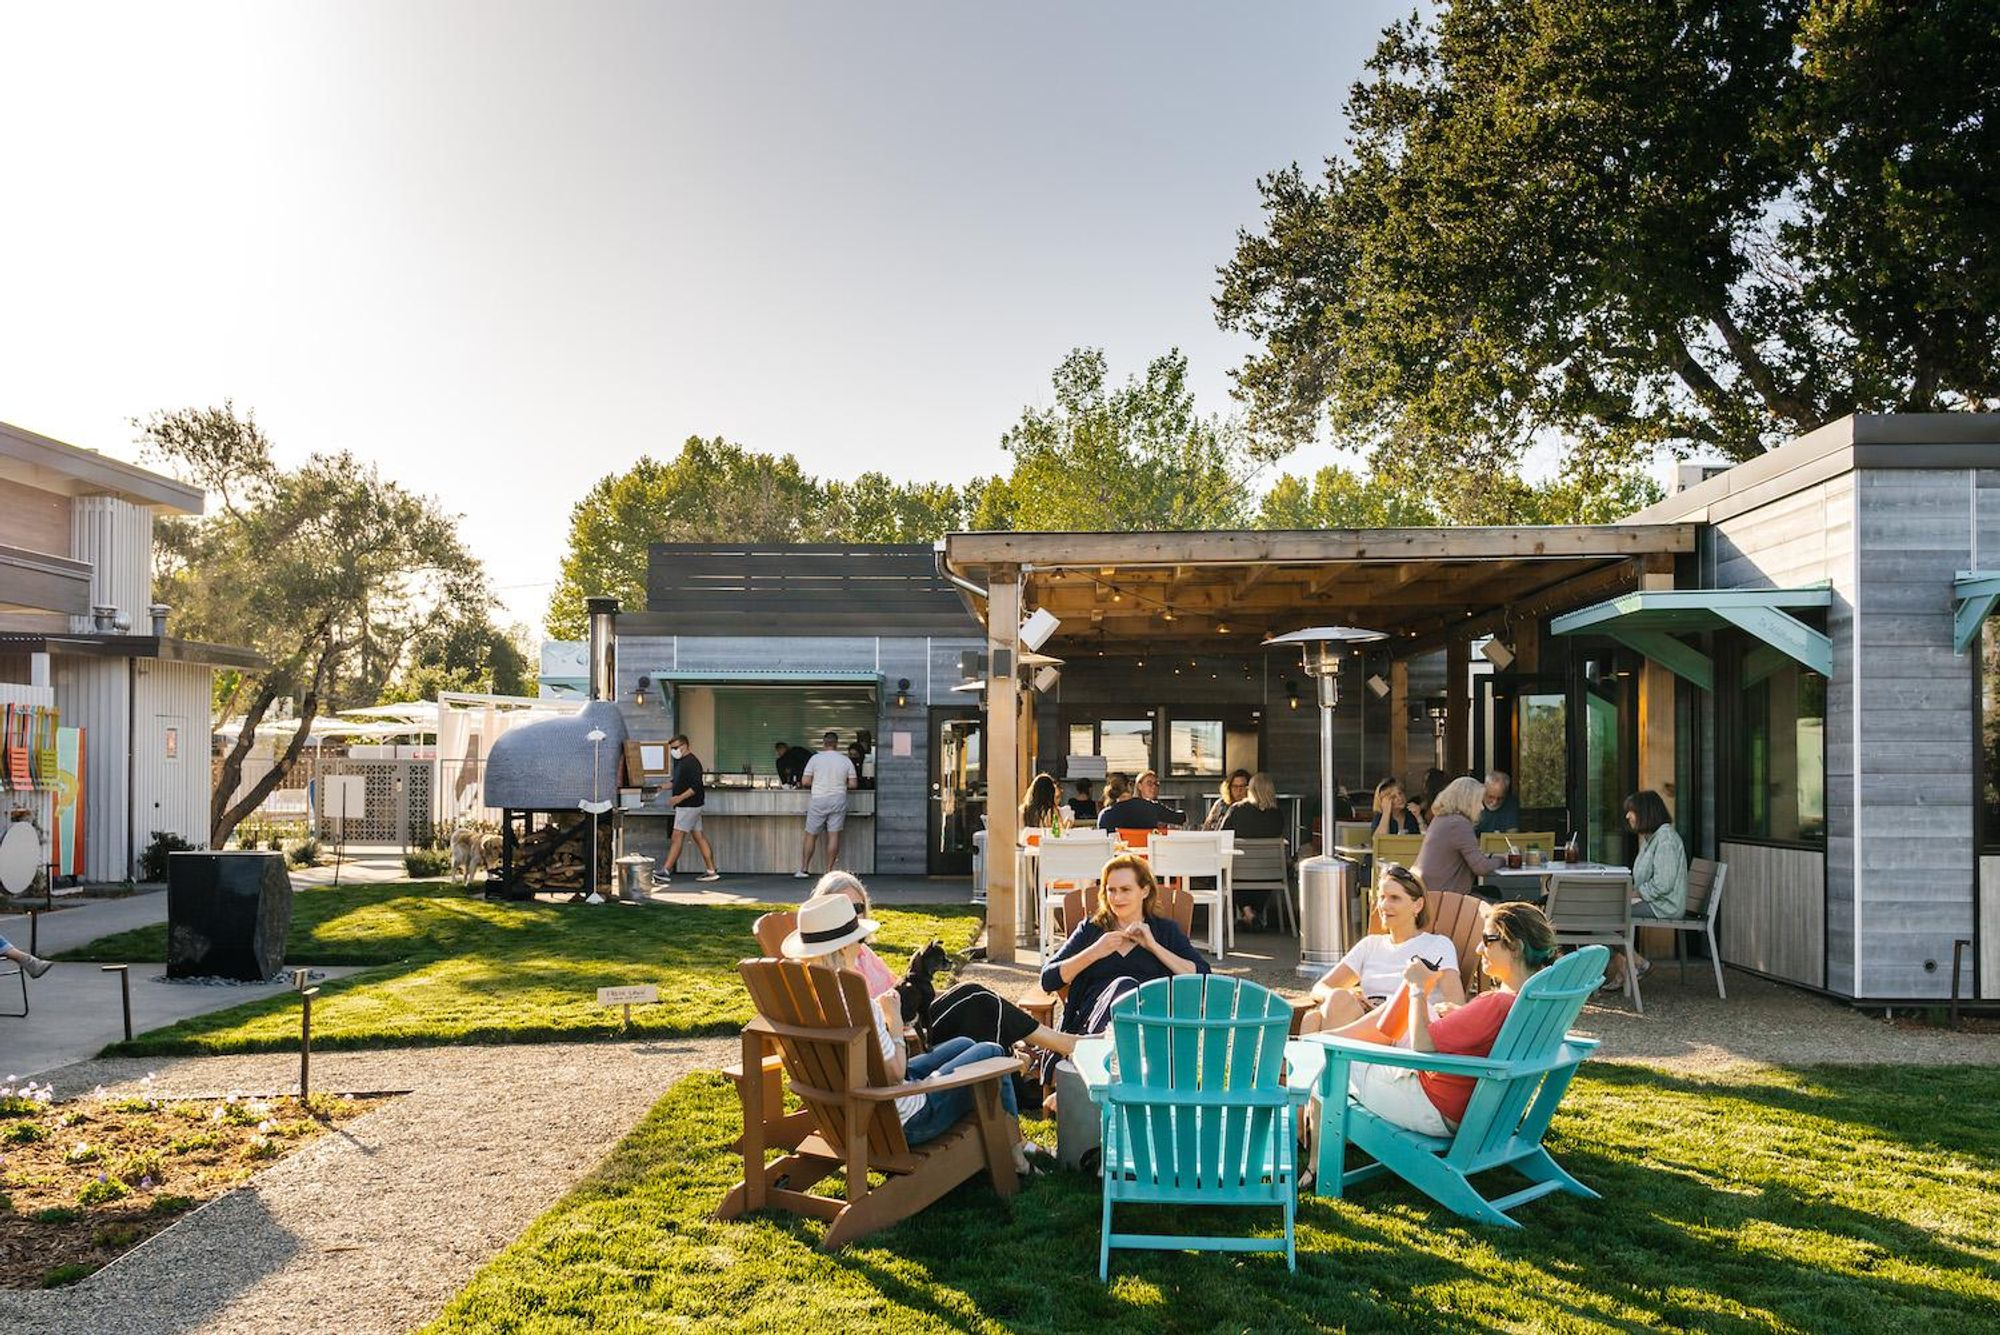 In Calistoga, Dr. Wilkinson's Backyard Resort gets a fresh, camp-chic makeover